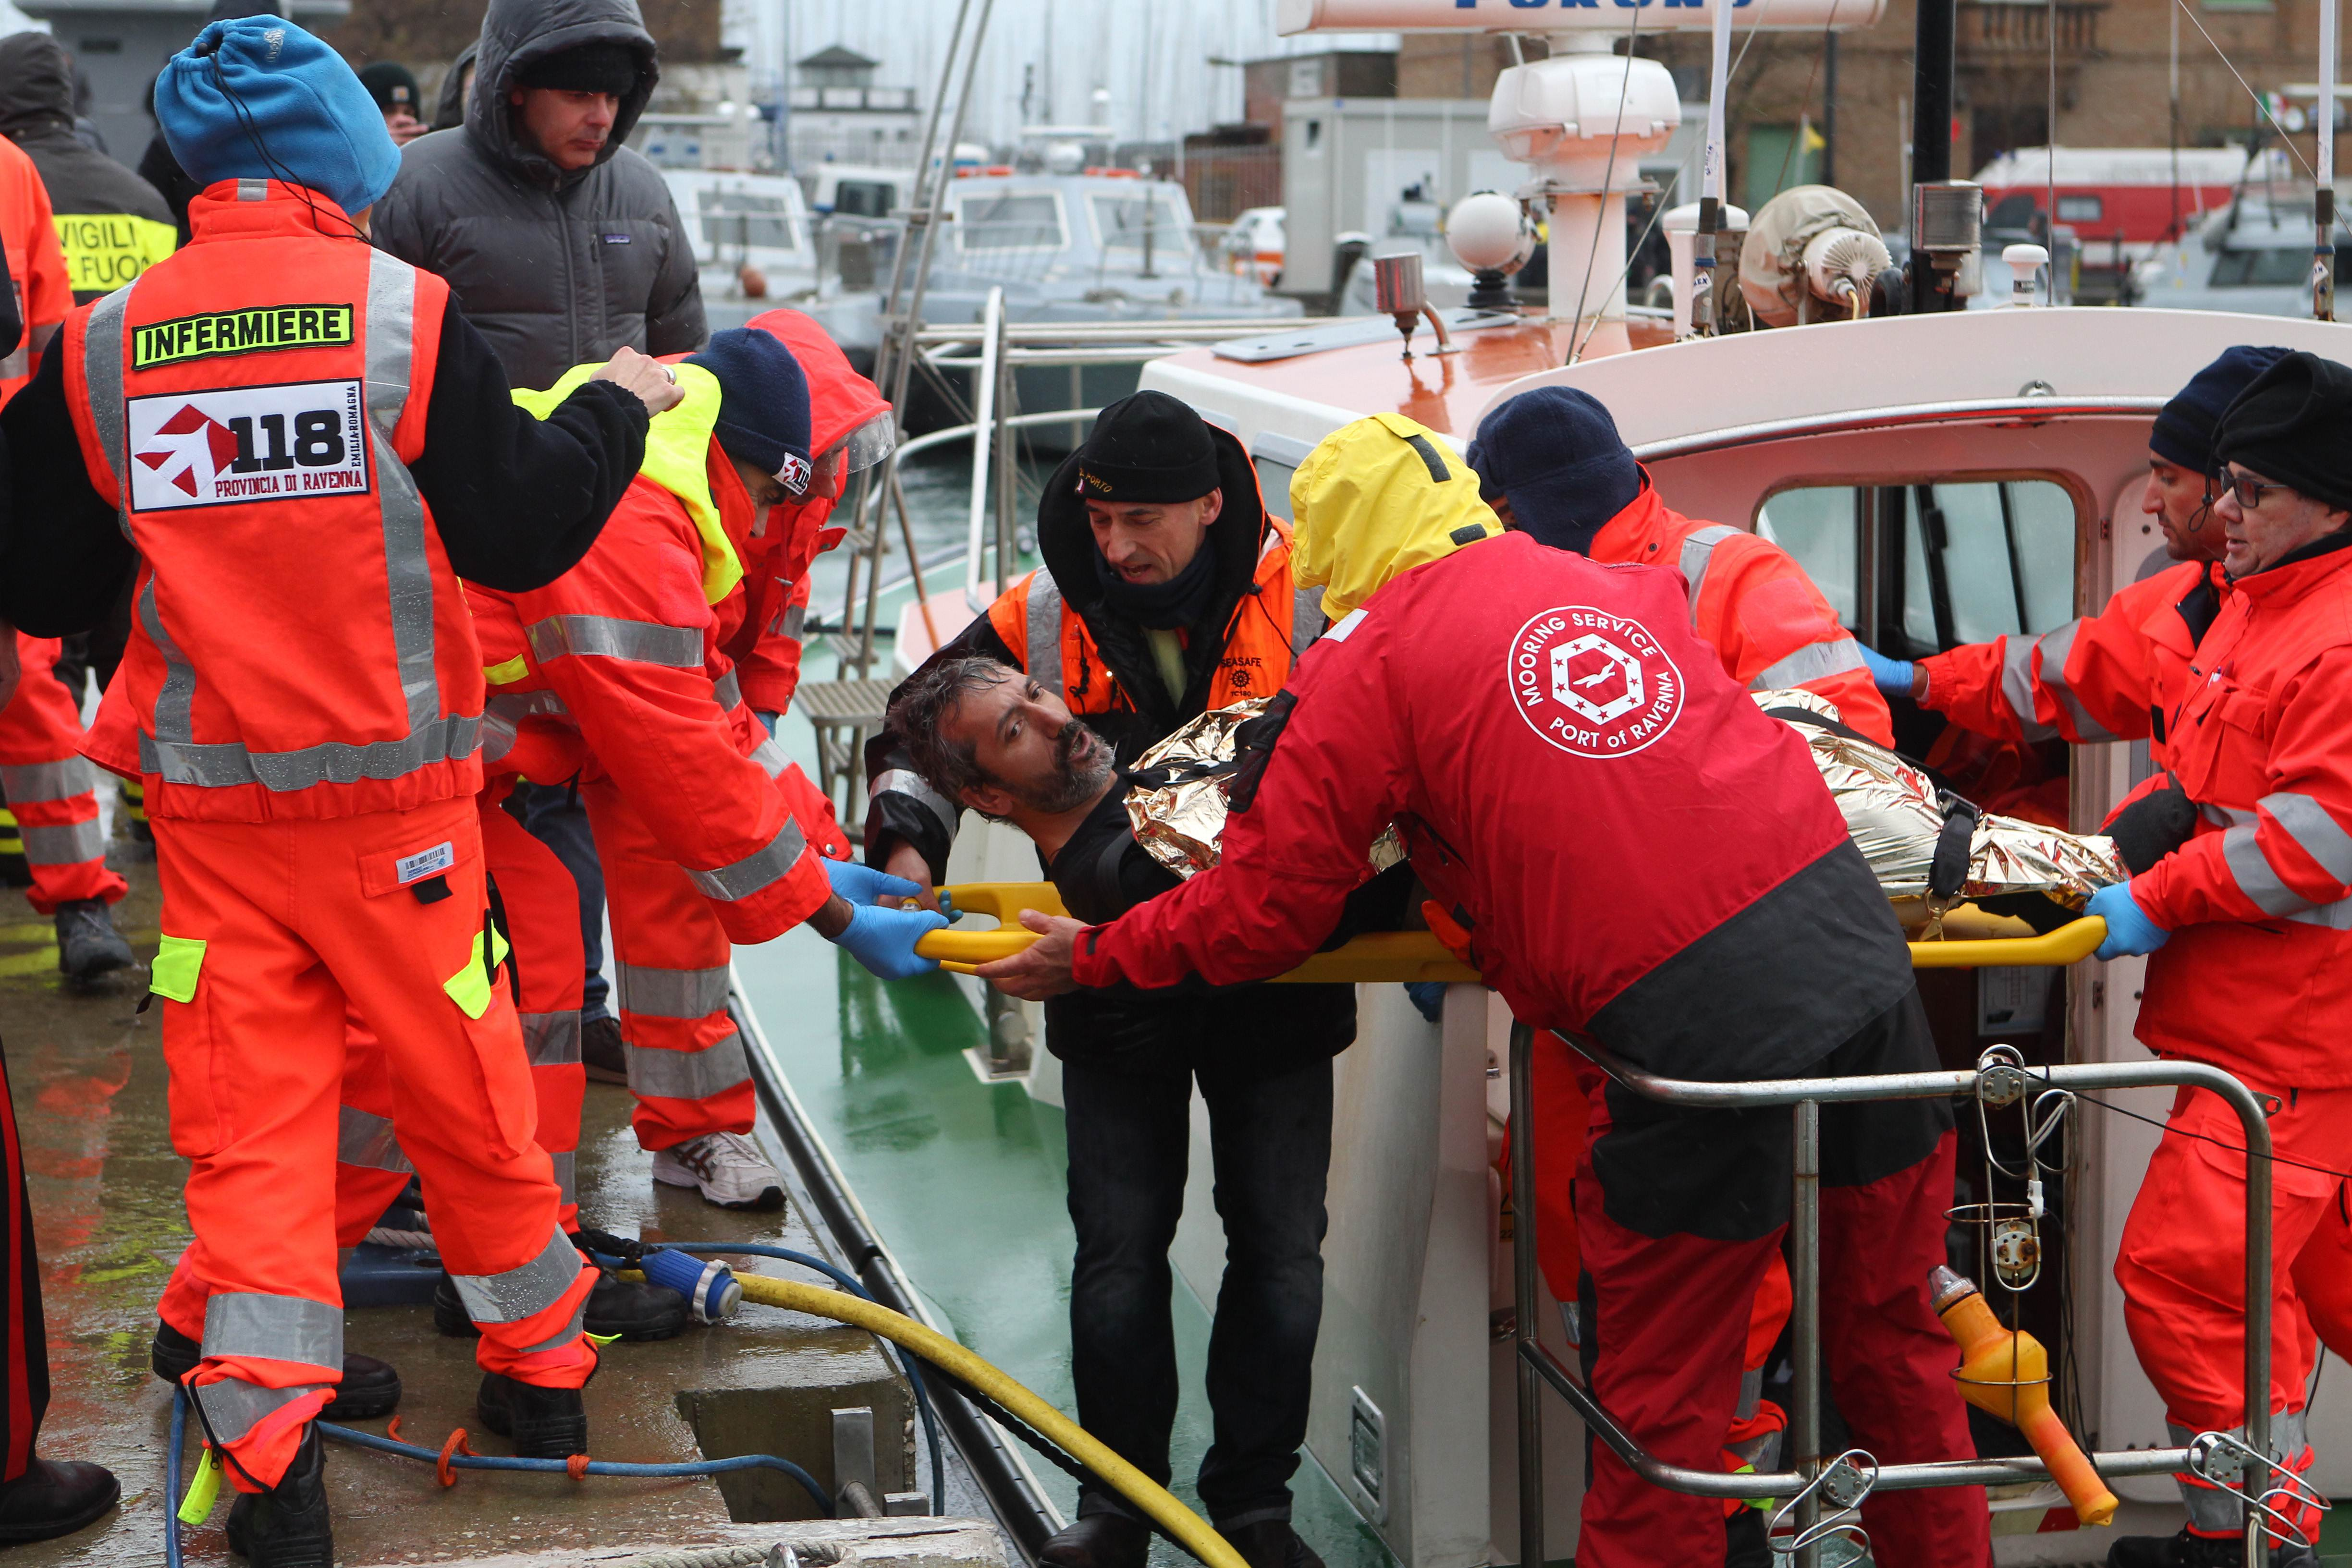 A rescued sailor is brought ashore in the harbor at Ravenna on Sunday. Three seamen were missing, feared drowned after a Turkish-registered merchant ship sank off Italy following a collision with a Belize-registered vessel in rough Adriatic seas, the coast guard said.   AFP-JIJI